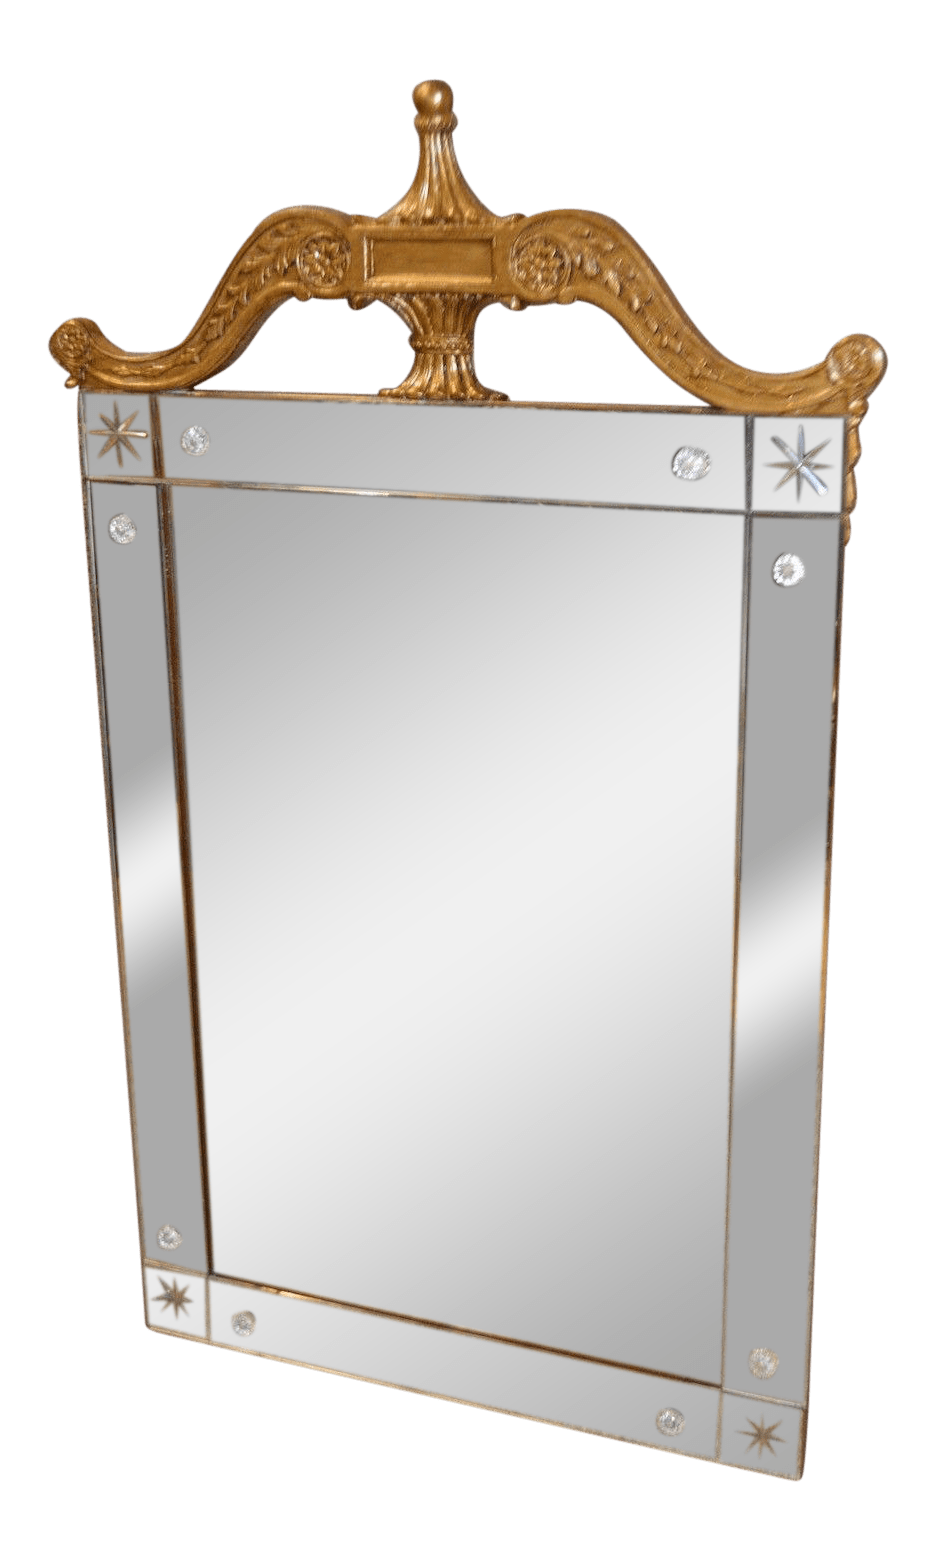 Art Deco Style Mirror Vintage Art Deco Style Etched Glass Wall Mirror With Carved Burnished Gold Frame